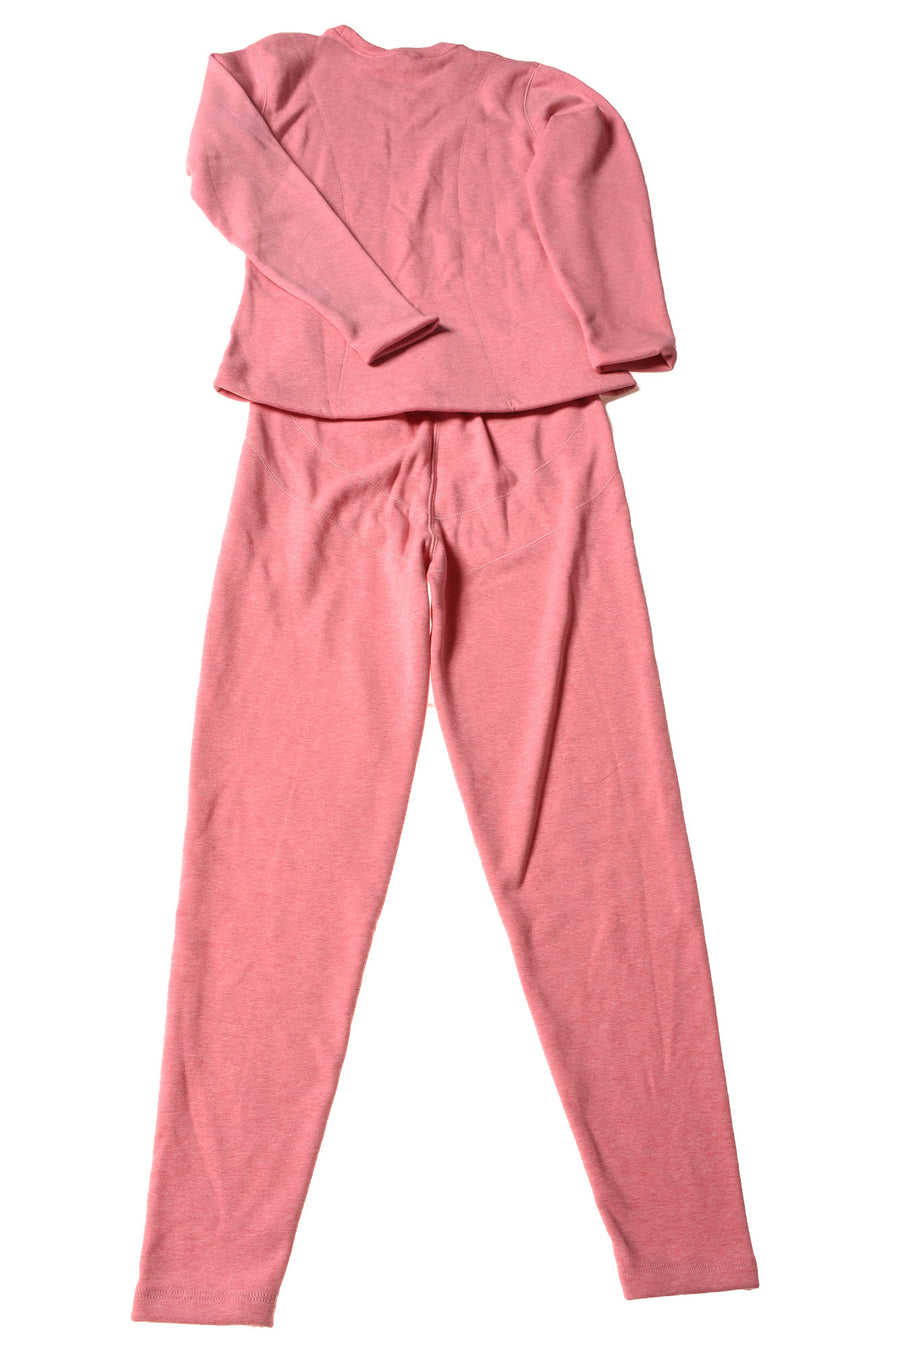 NEW Geeda Girl's Outfit XX-Large Pink